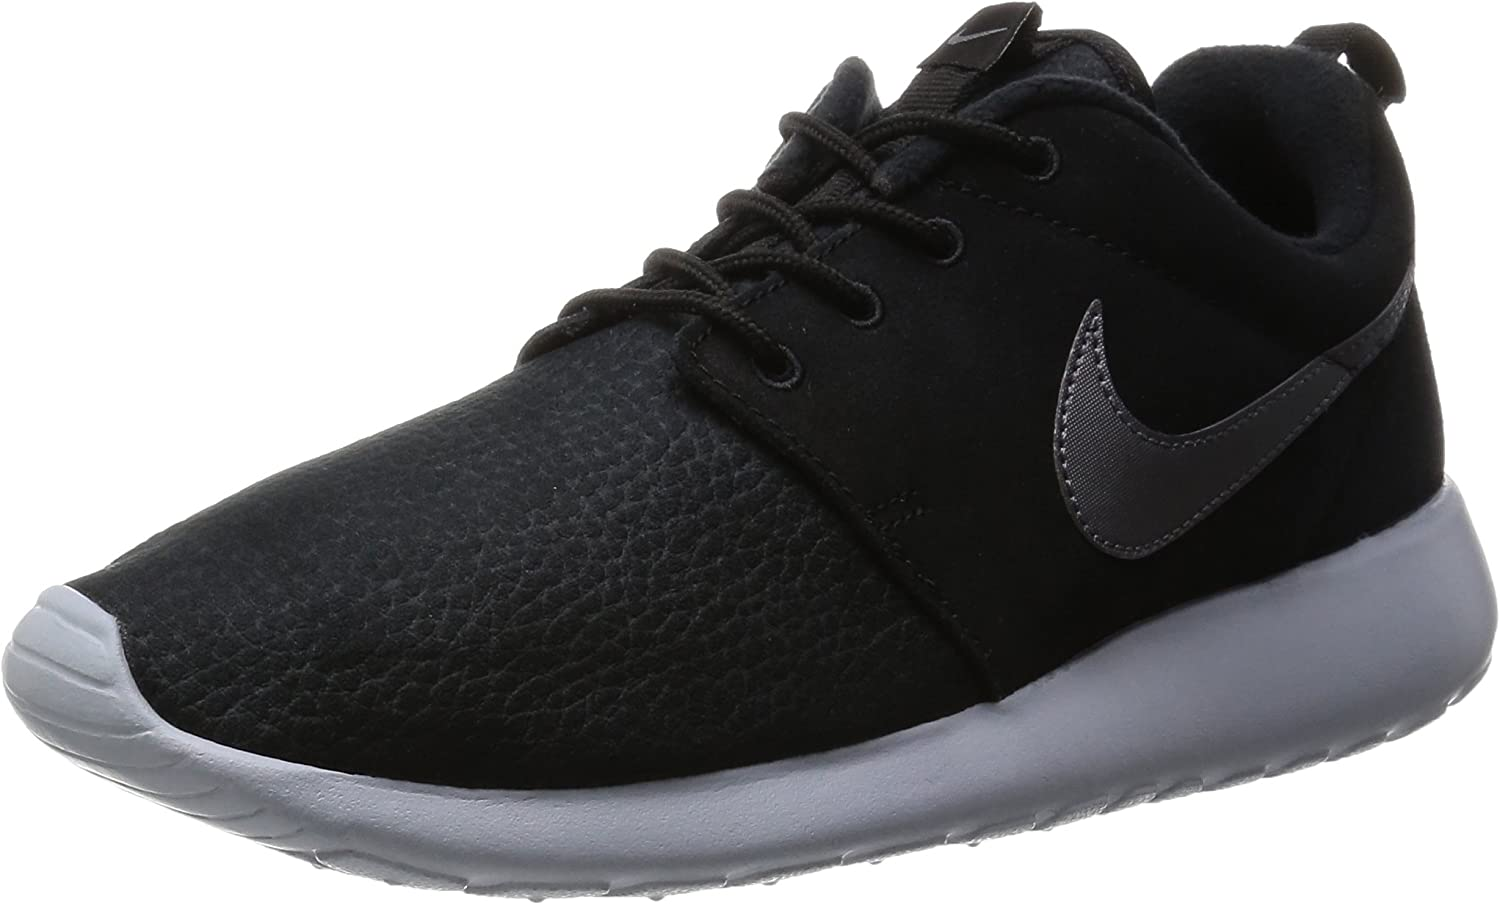 Nike Men's Roshe One Suede Running shoes